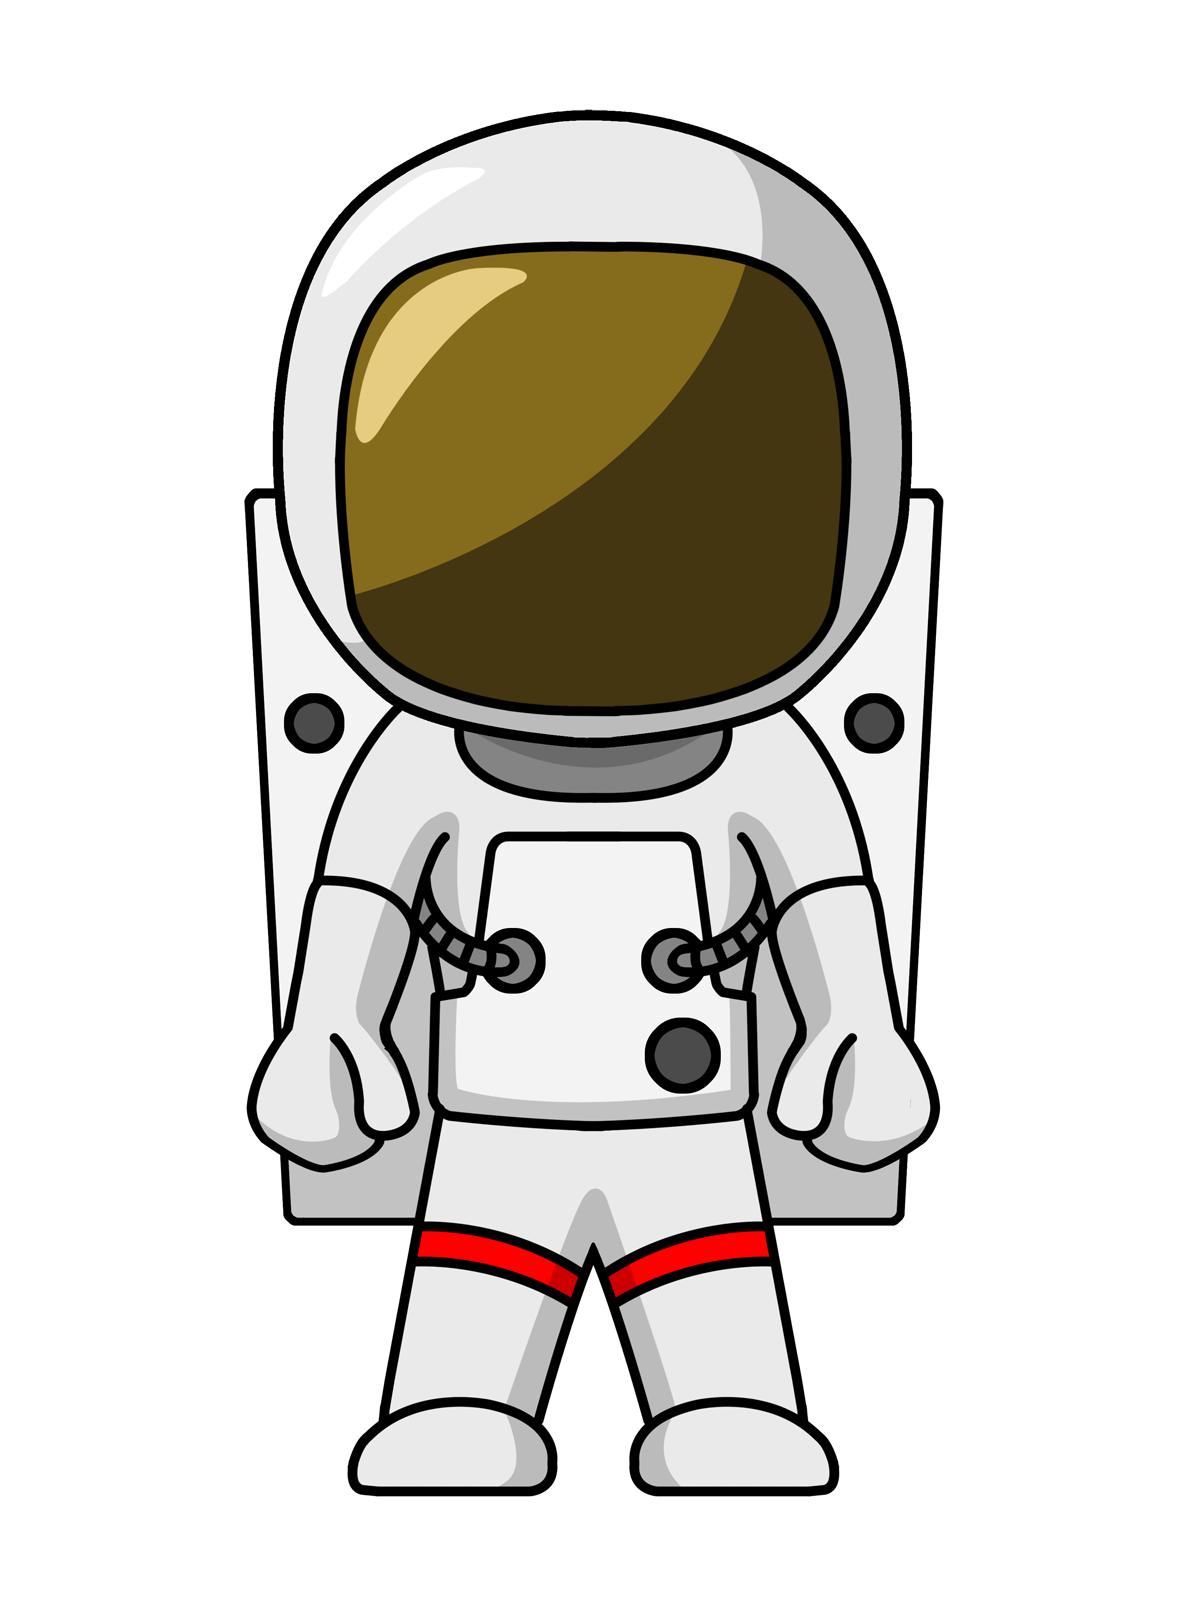 Astronaut Clipart Free - Cliparts.co